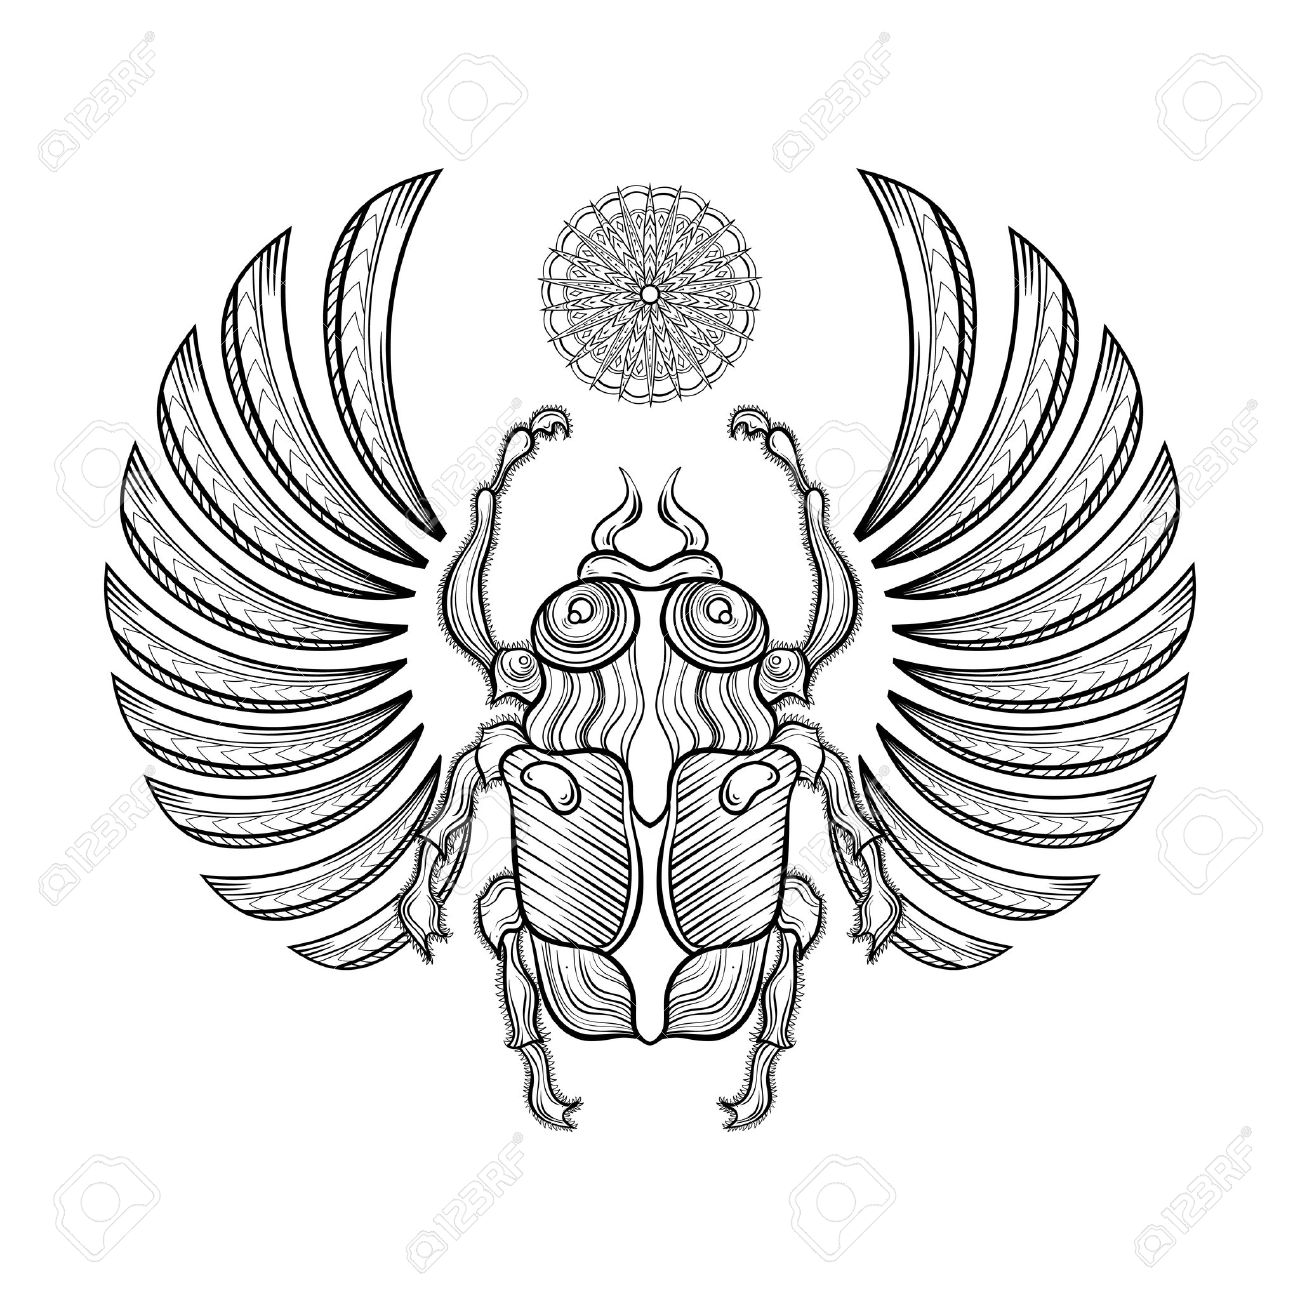 1300x1300 Illustration Egyptian Scarab Beetle With Wings. Egyptian Icons